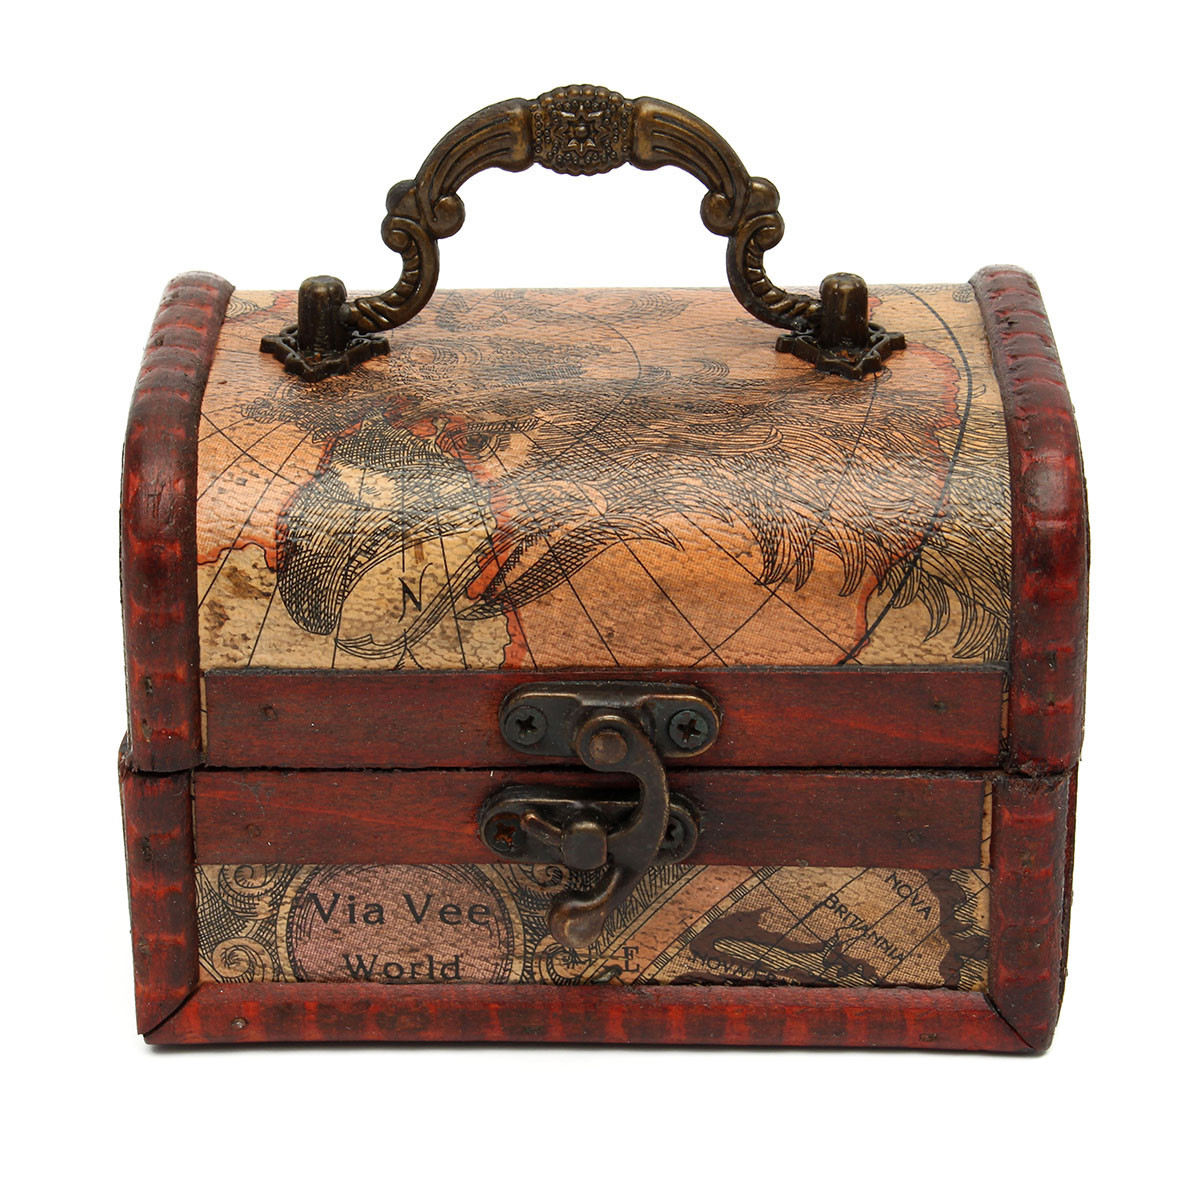 How To Make A Decorative Wooden Box: Vintage Maps Gracious Wooden Jewelry Box Storage Organizer